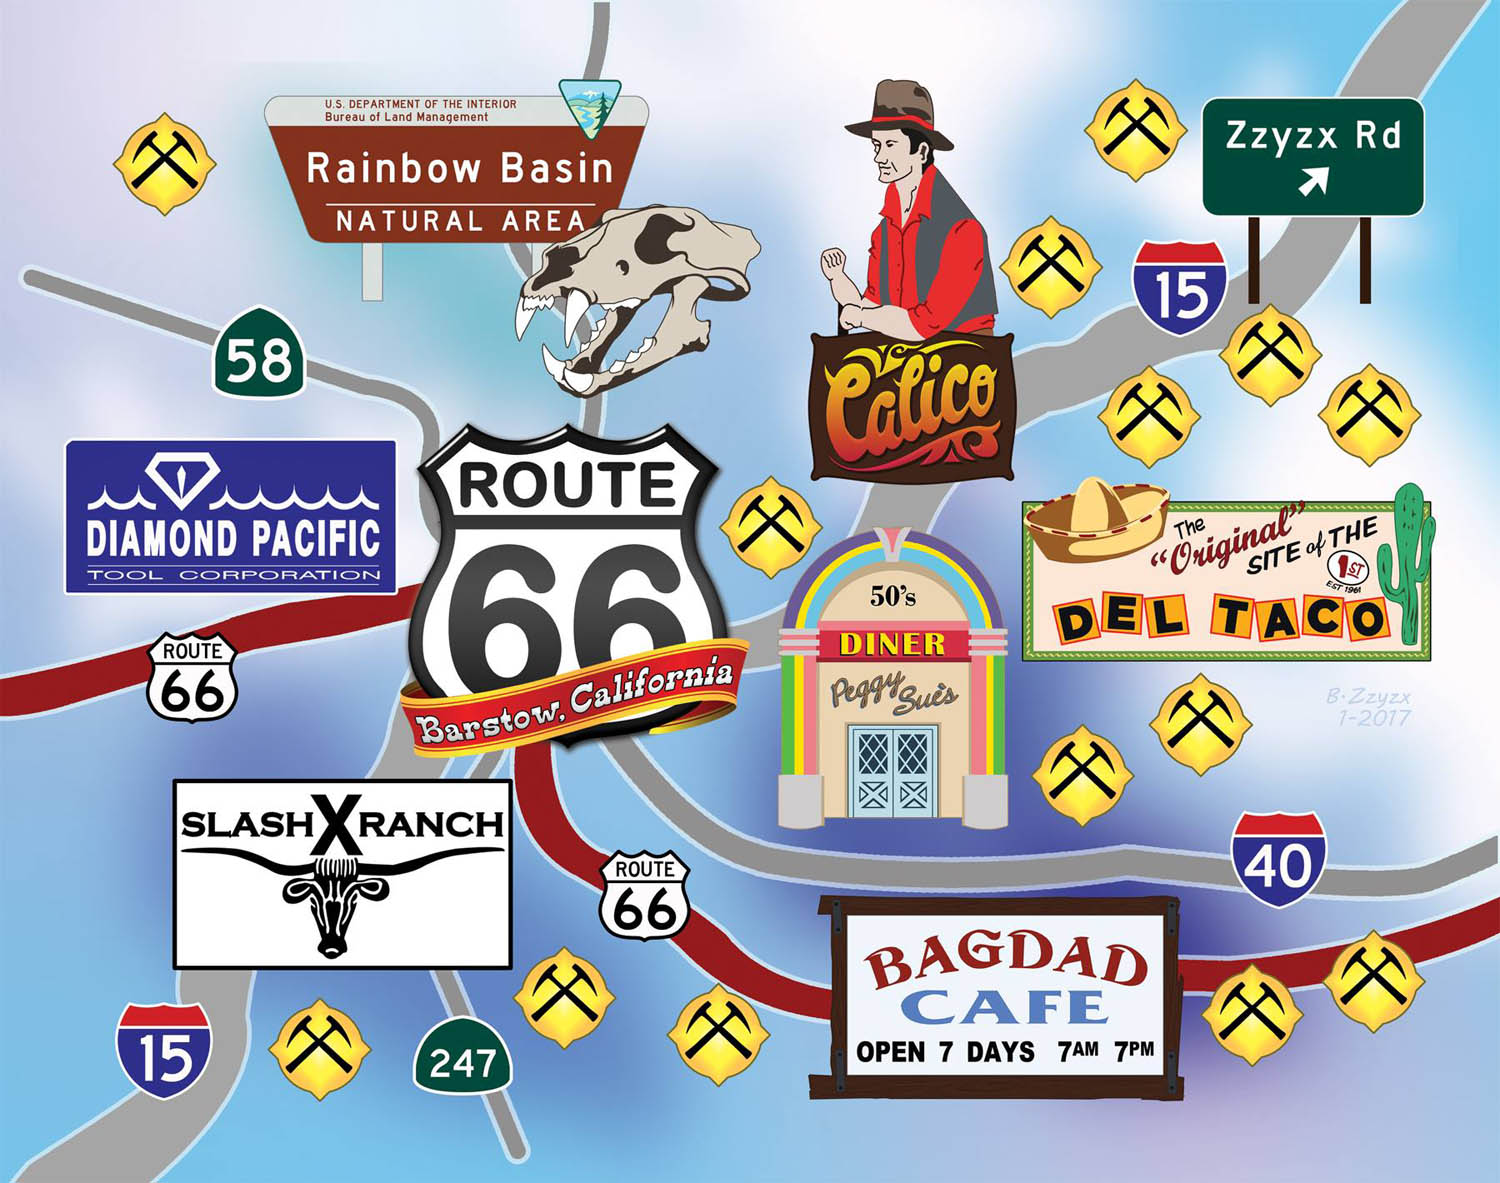 Map of Local Barstow Attractions - Centerfold